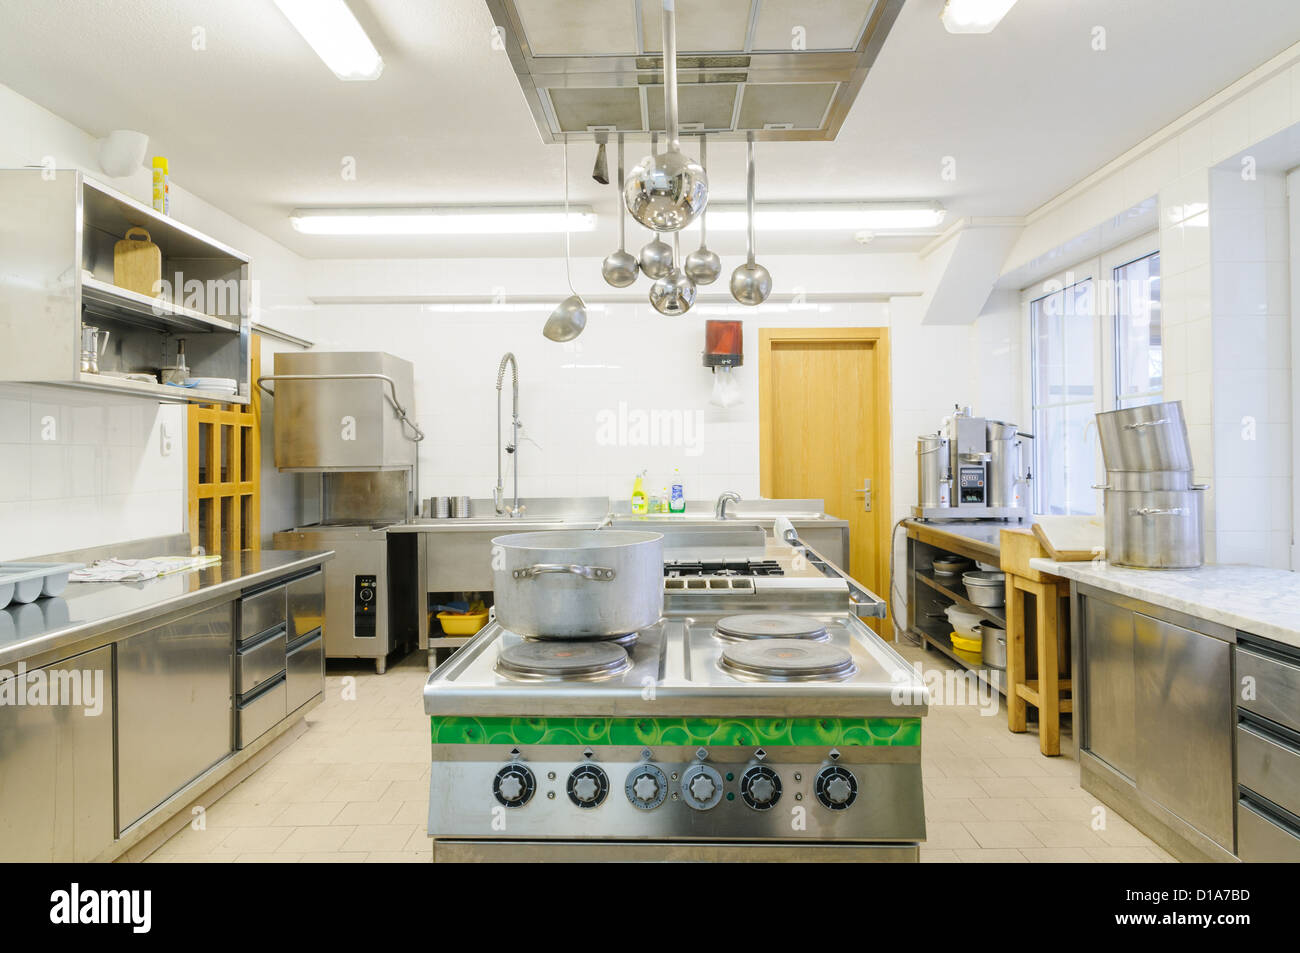 Hotel Kitchen Stock Photos & Hotel Kitchen Stock Images - Alamy